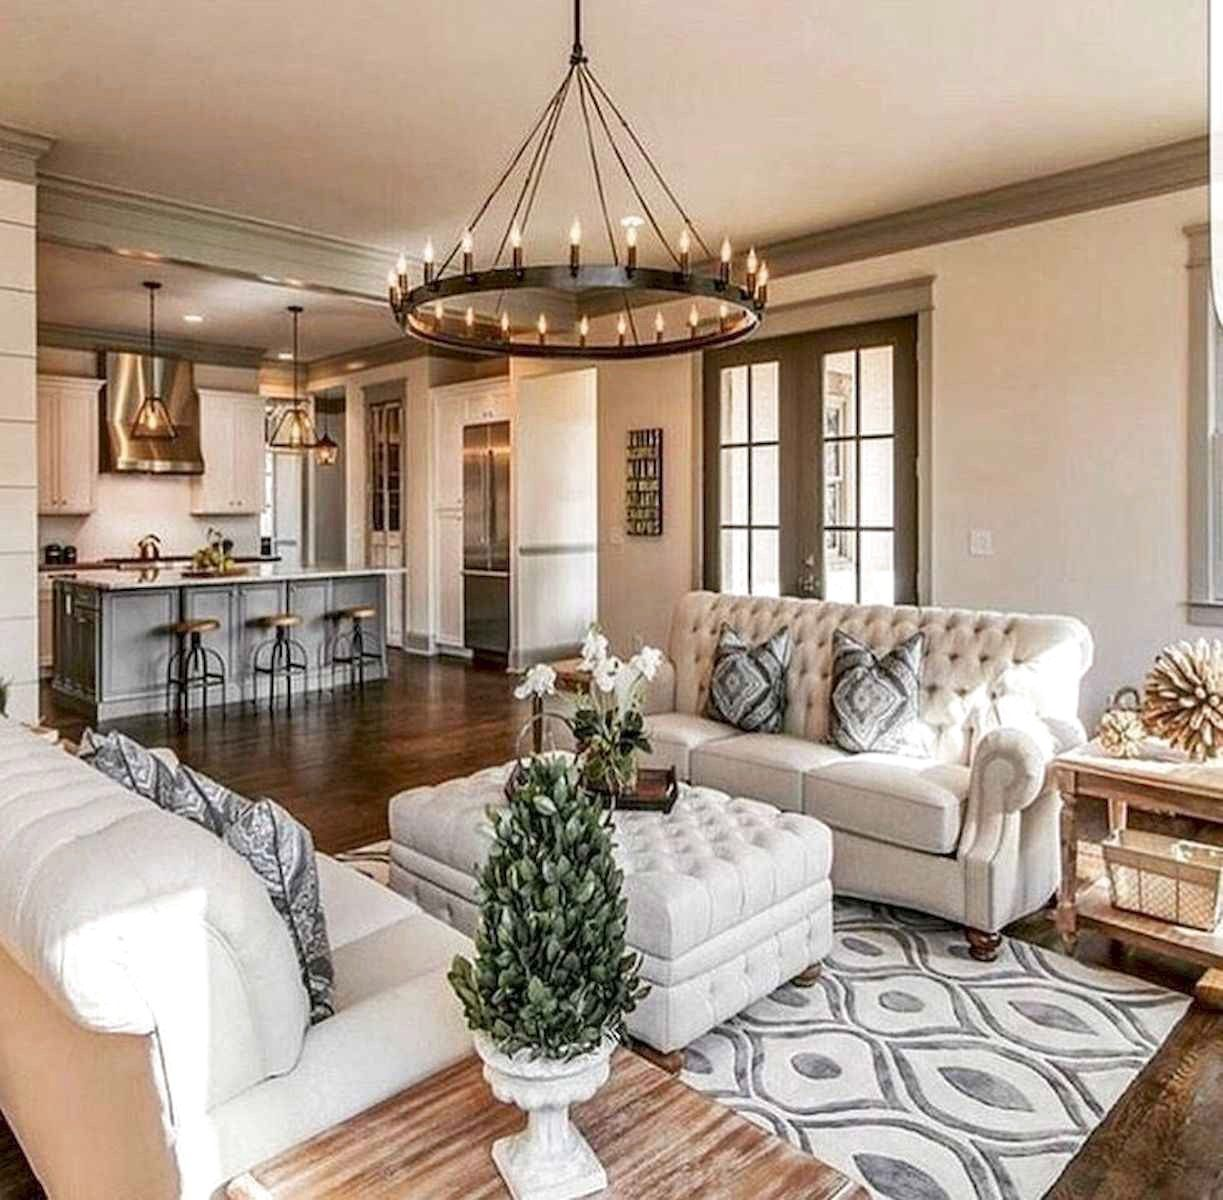 62 Favourite Farmhouse Living Room Lighting Ideas Decor And Design